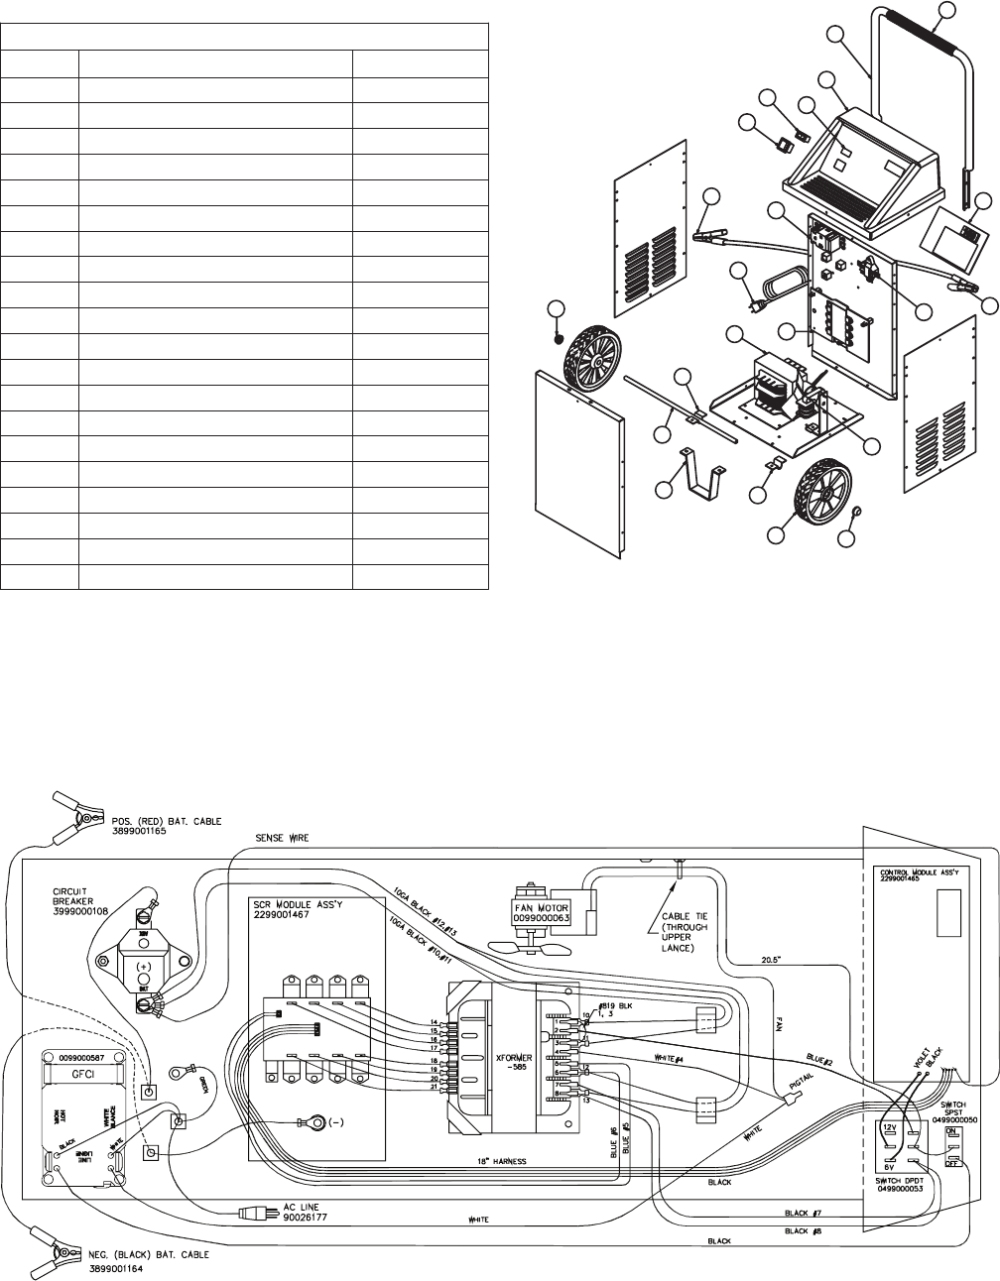 medium resolution of 5fdfd23a 430e 4481 a614 ed7f60287d6c bg4 wiring diagram for sears battery charger circuit schumacher battery